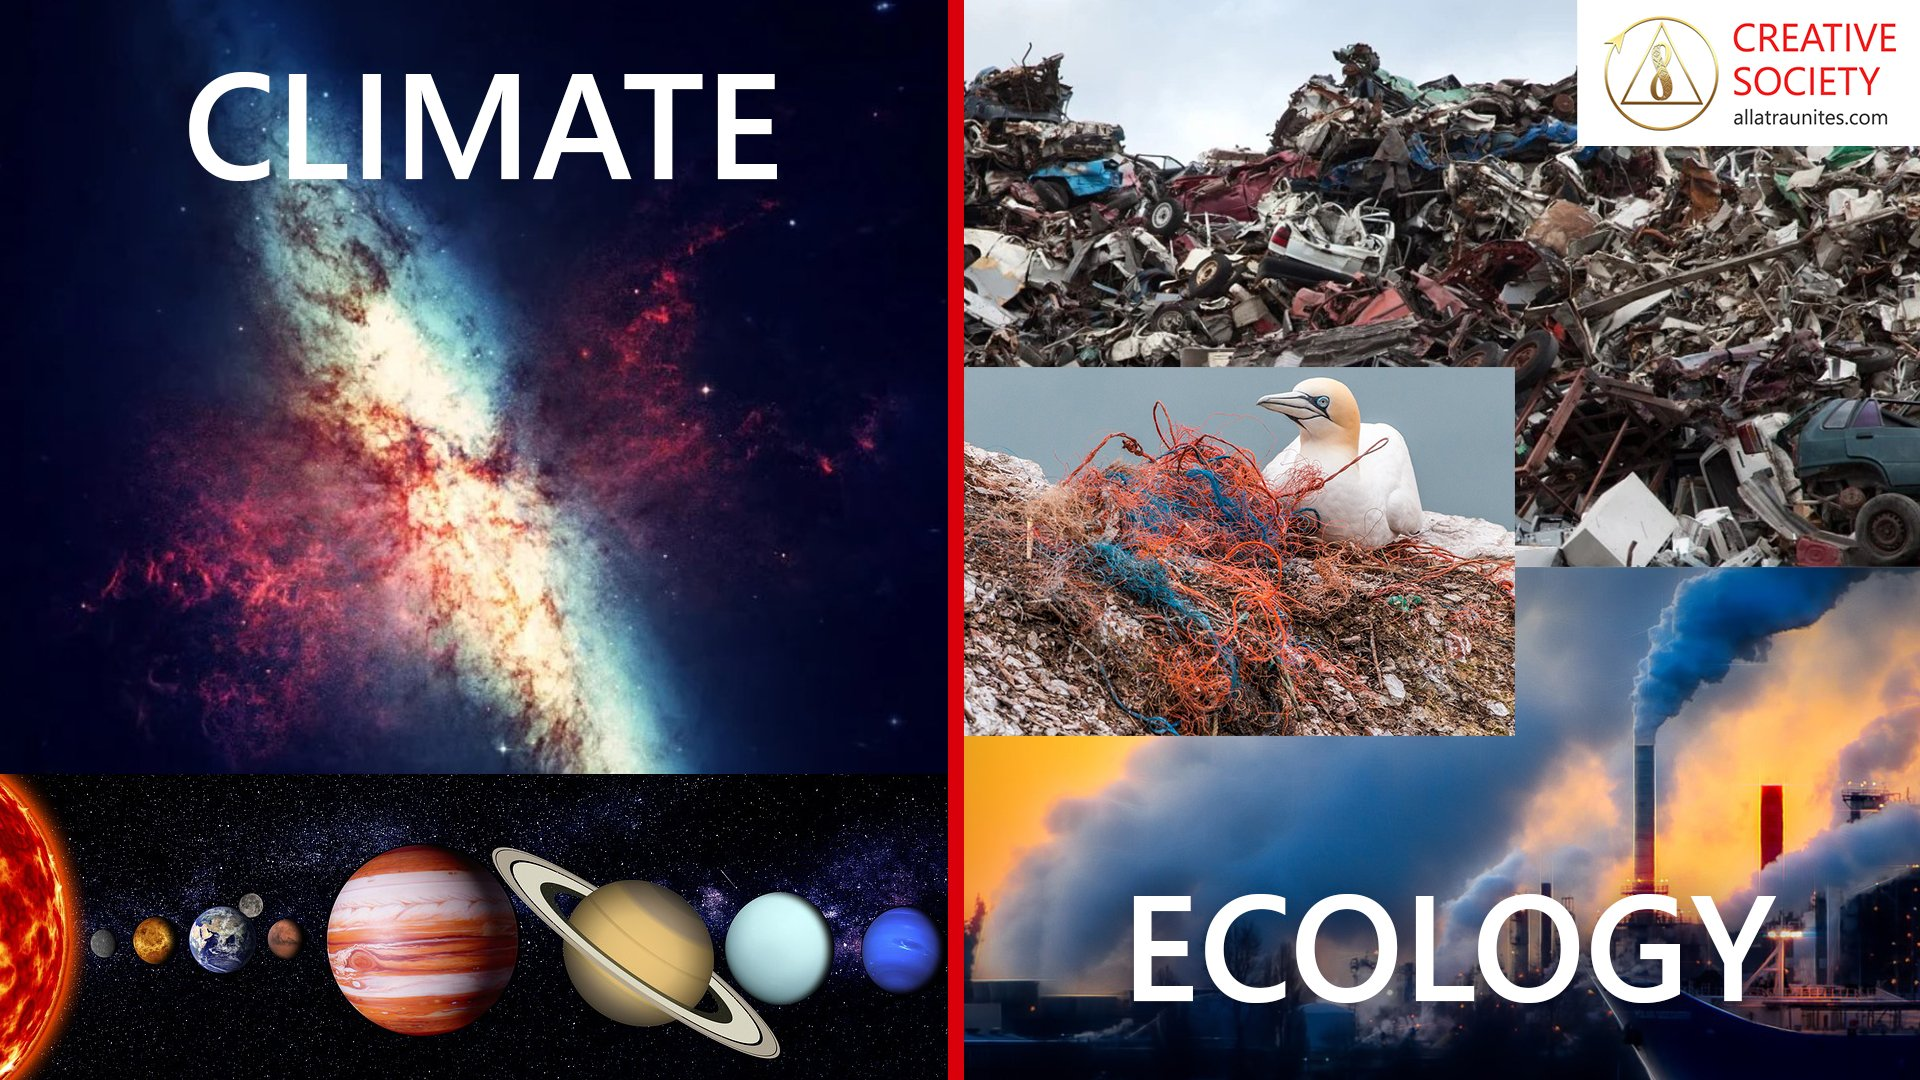 Climate and Ecology